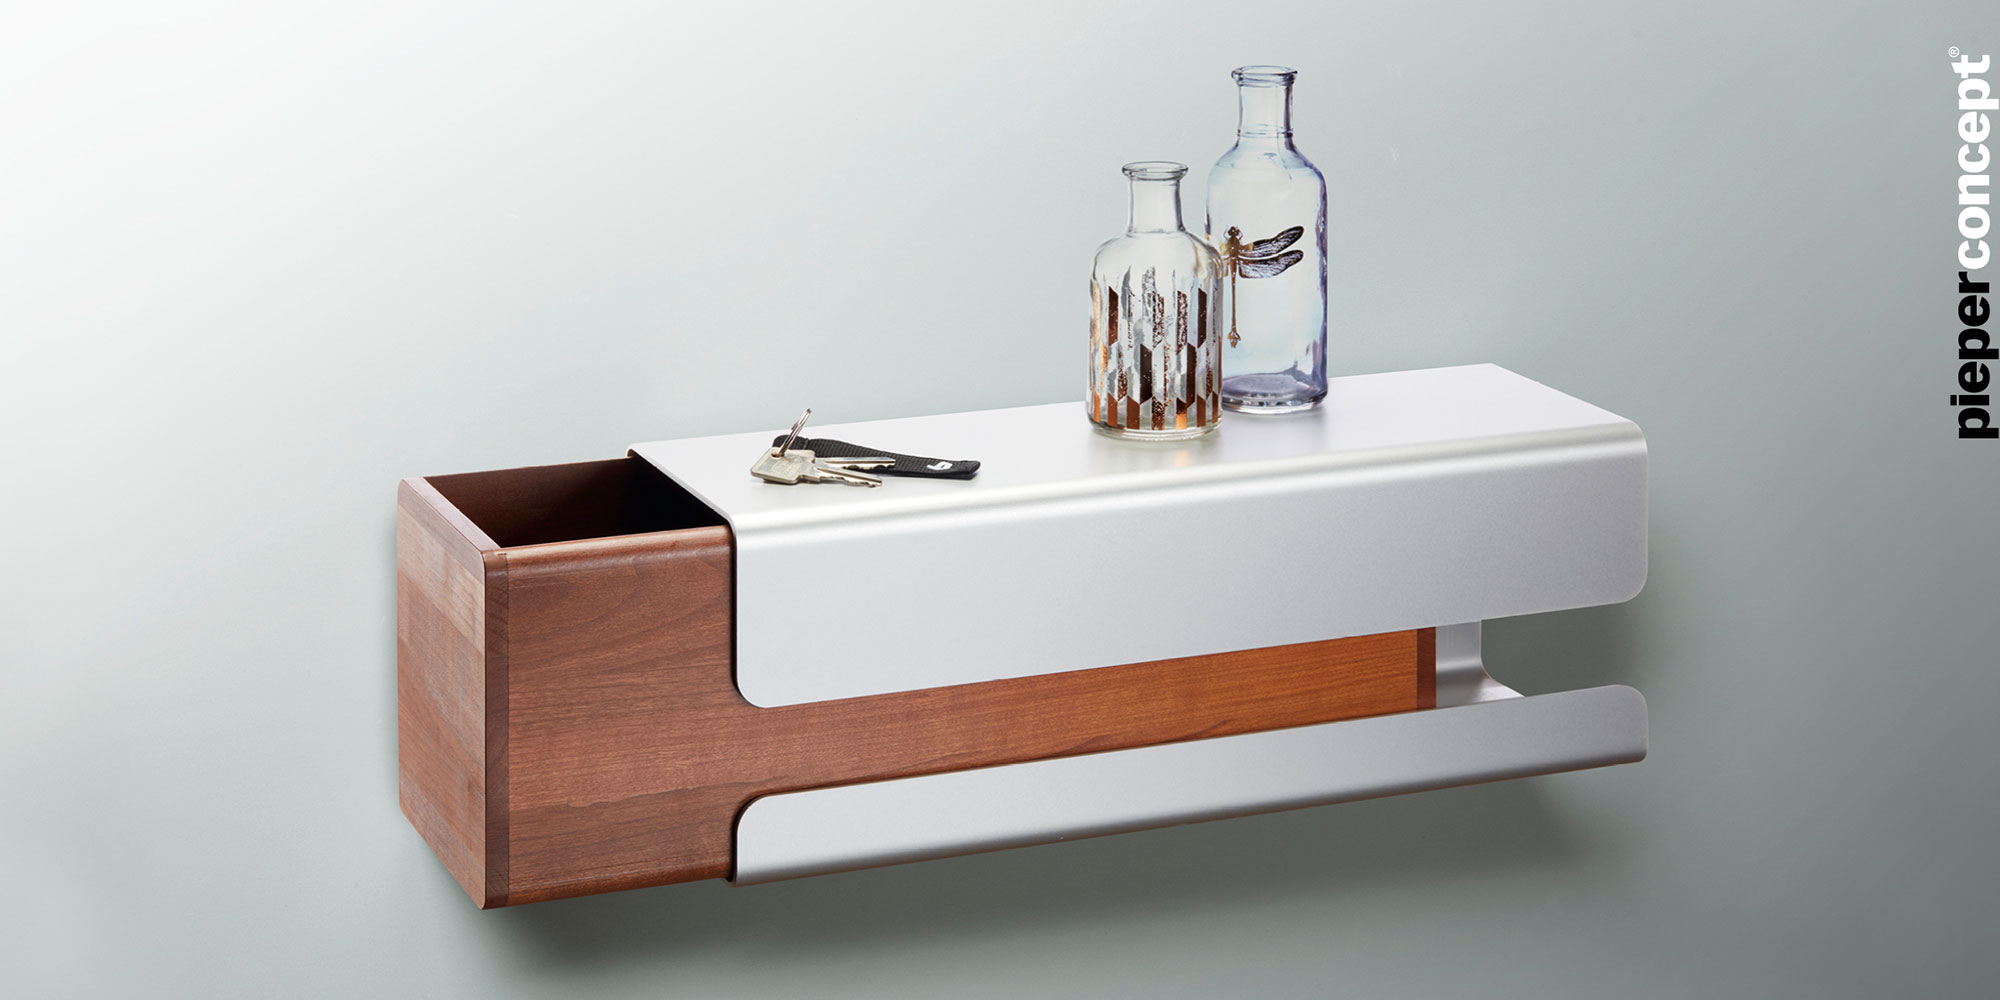 The Pieperconcept Brand Embos Timeless Minimalist Living Accessories For Private And Perfectly Crafted Quality Products